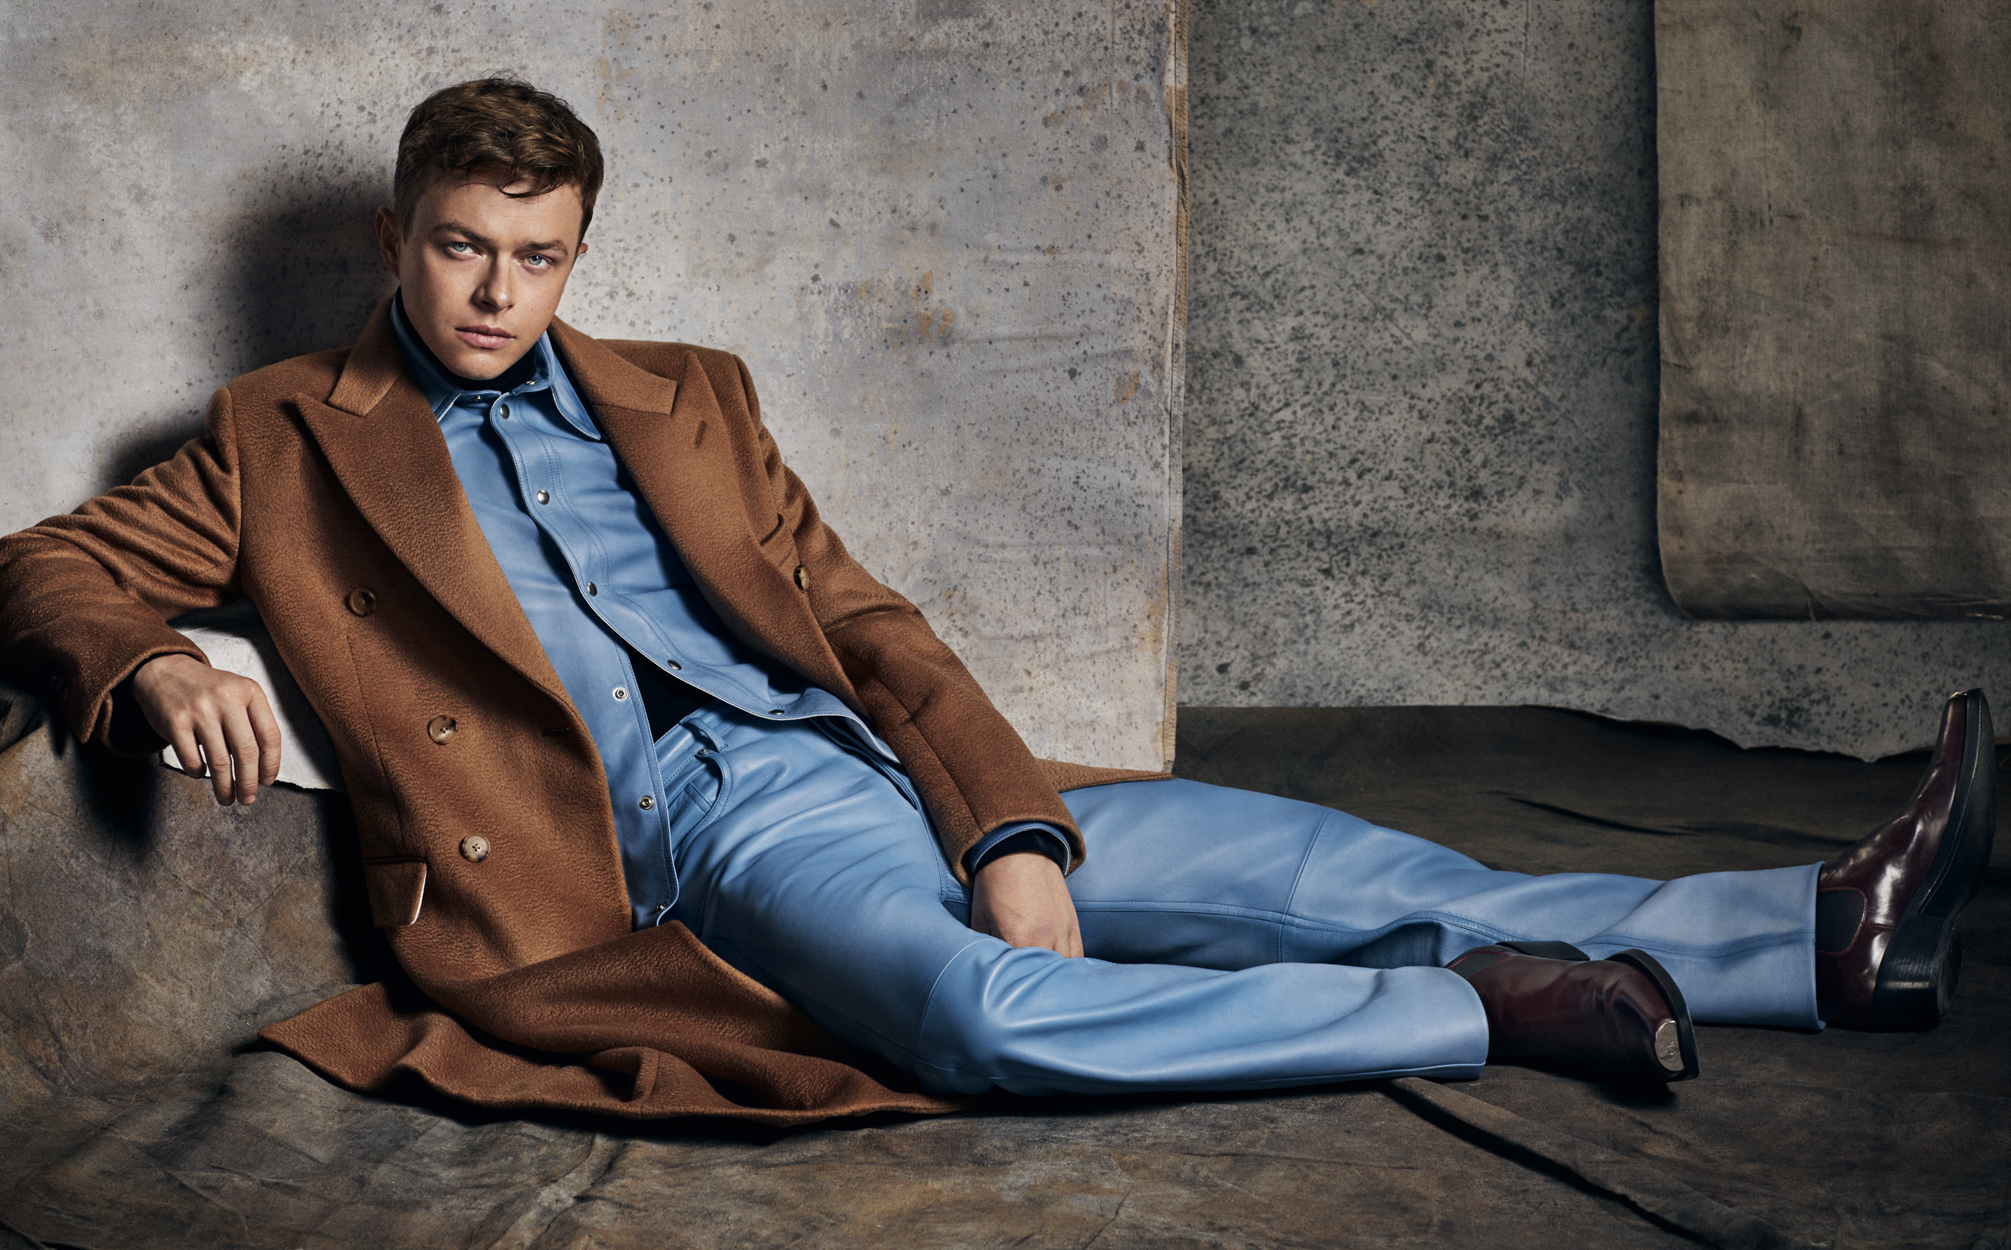 Celebrity Photographer Michael Schwartz: Dane DeHaan for Icon Magazine in Clavin Klein